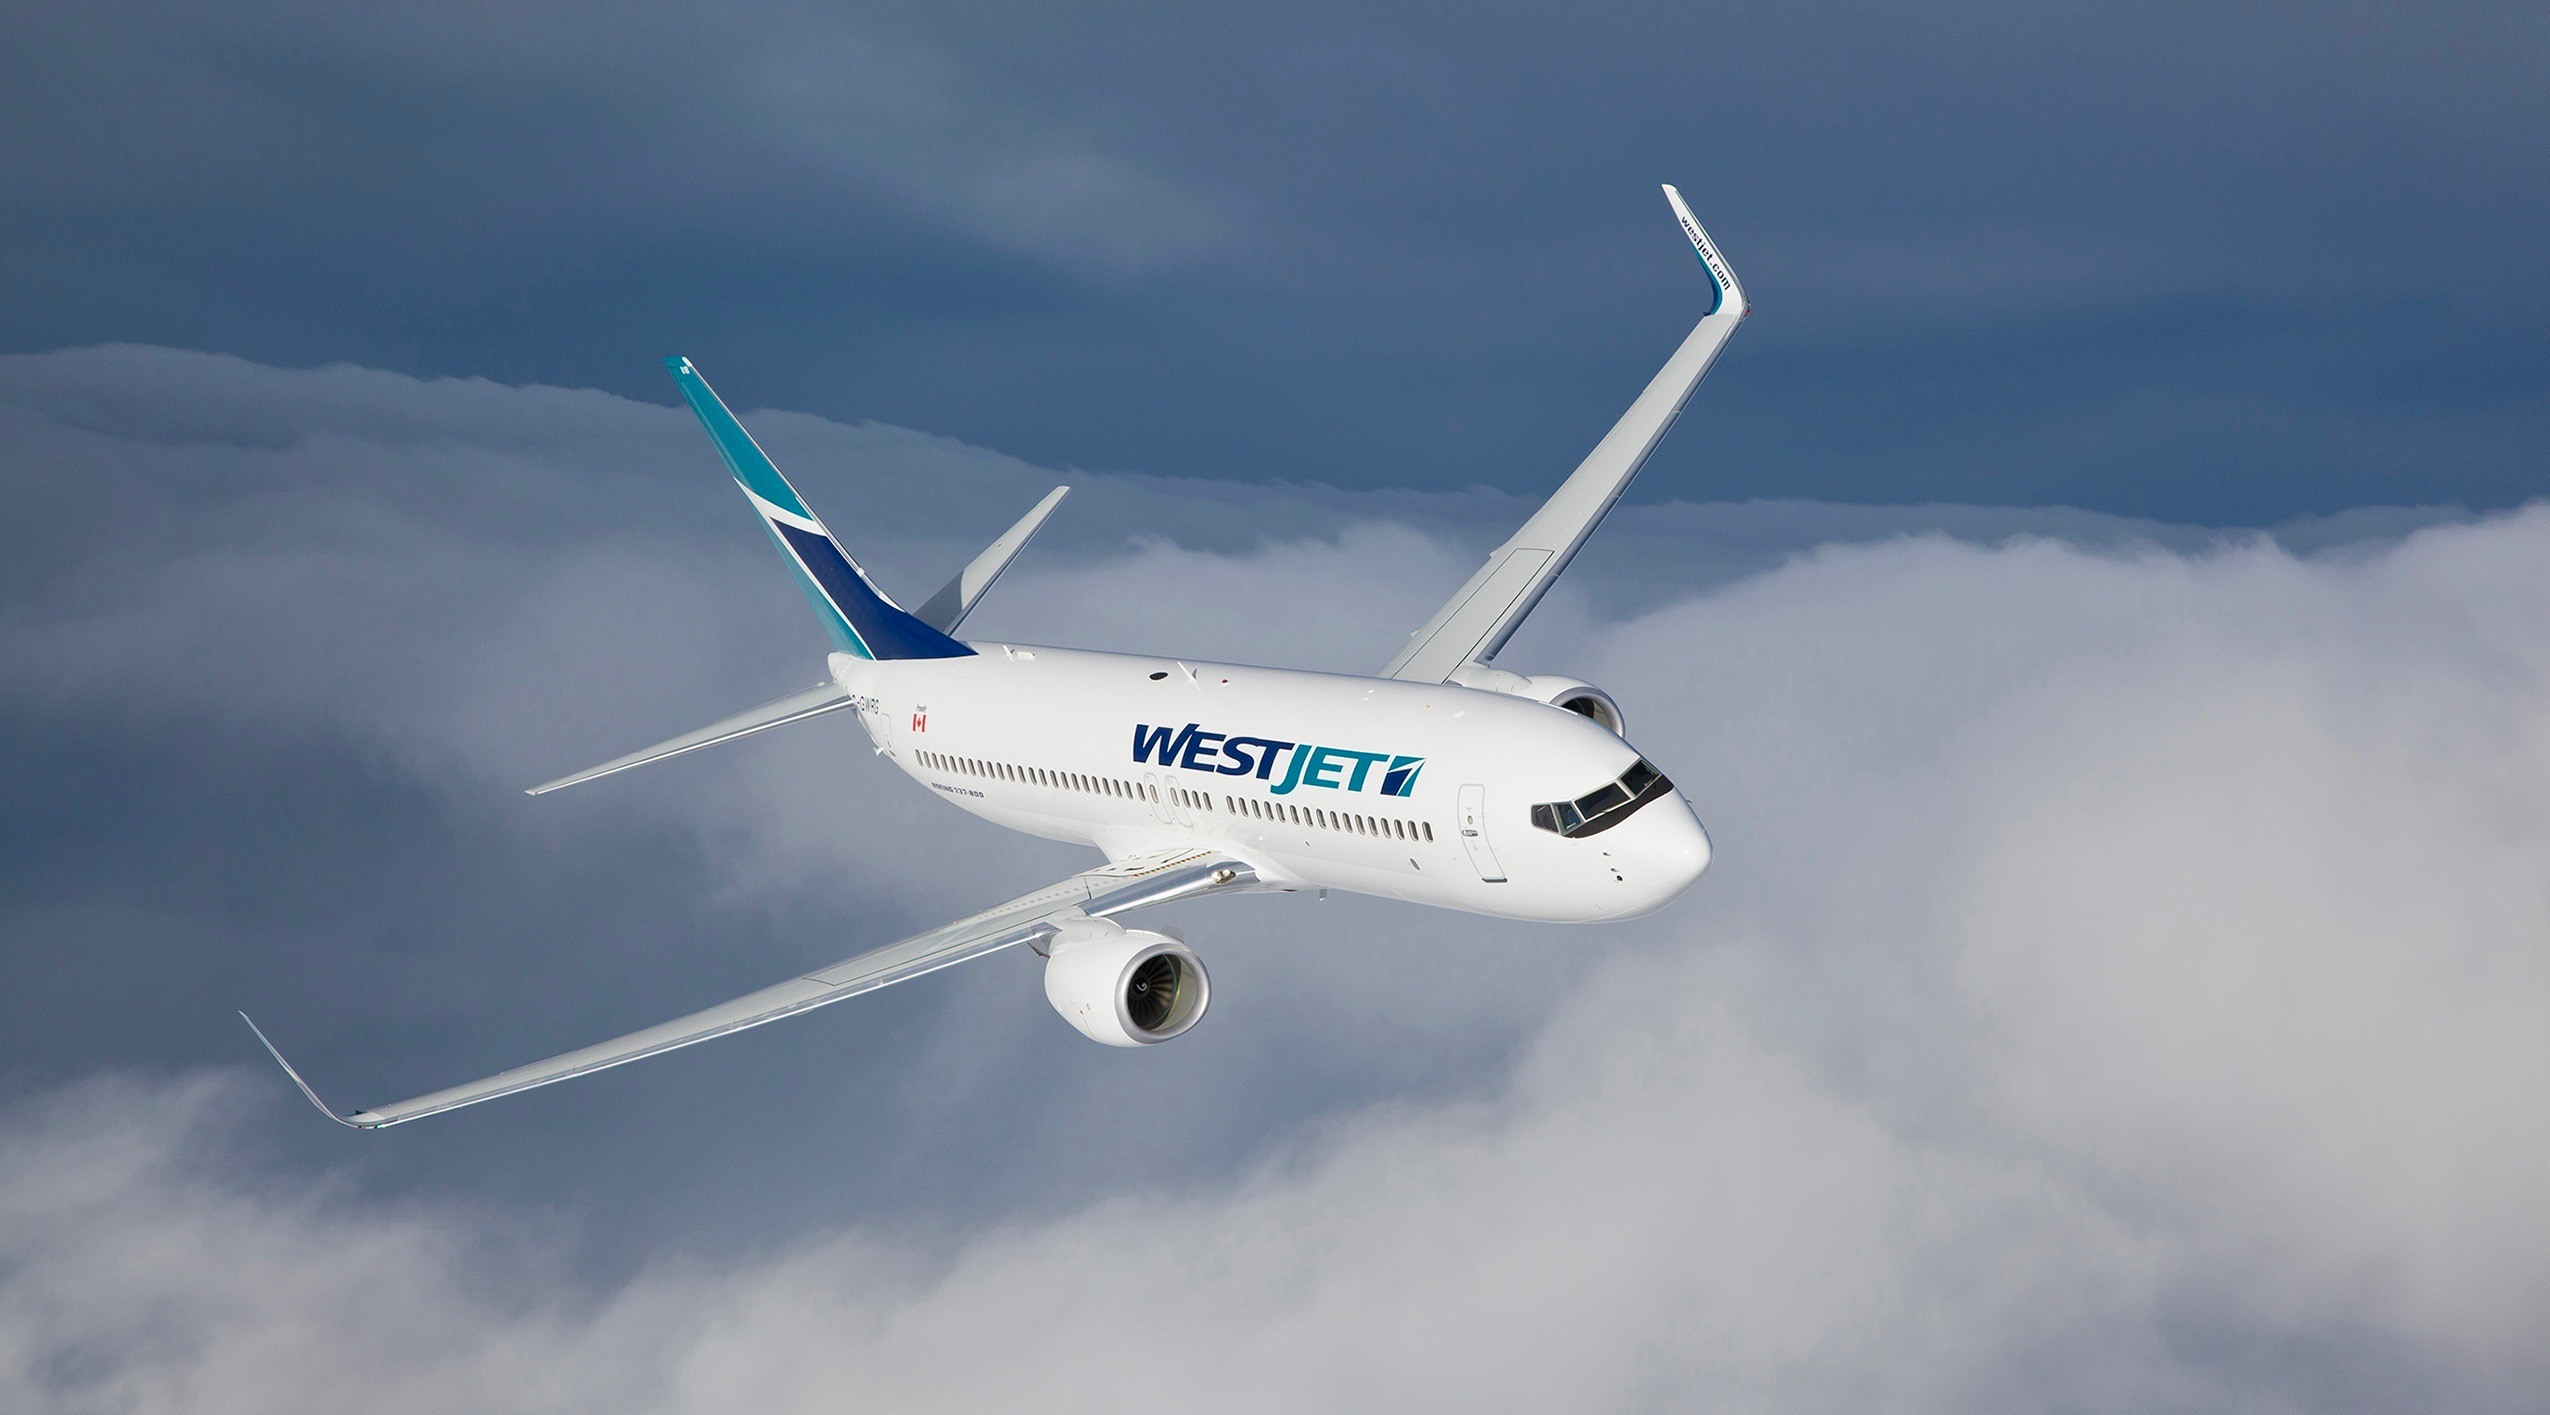 WestJet adding more fleet by 2020 as it announces partnership with Delta